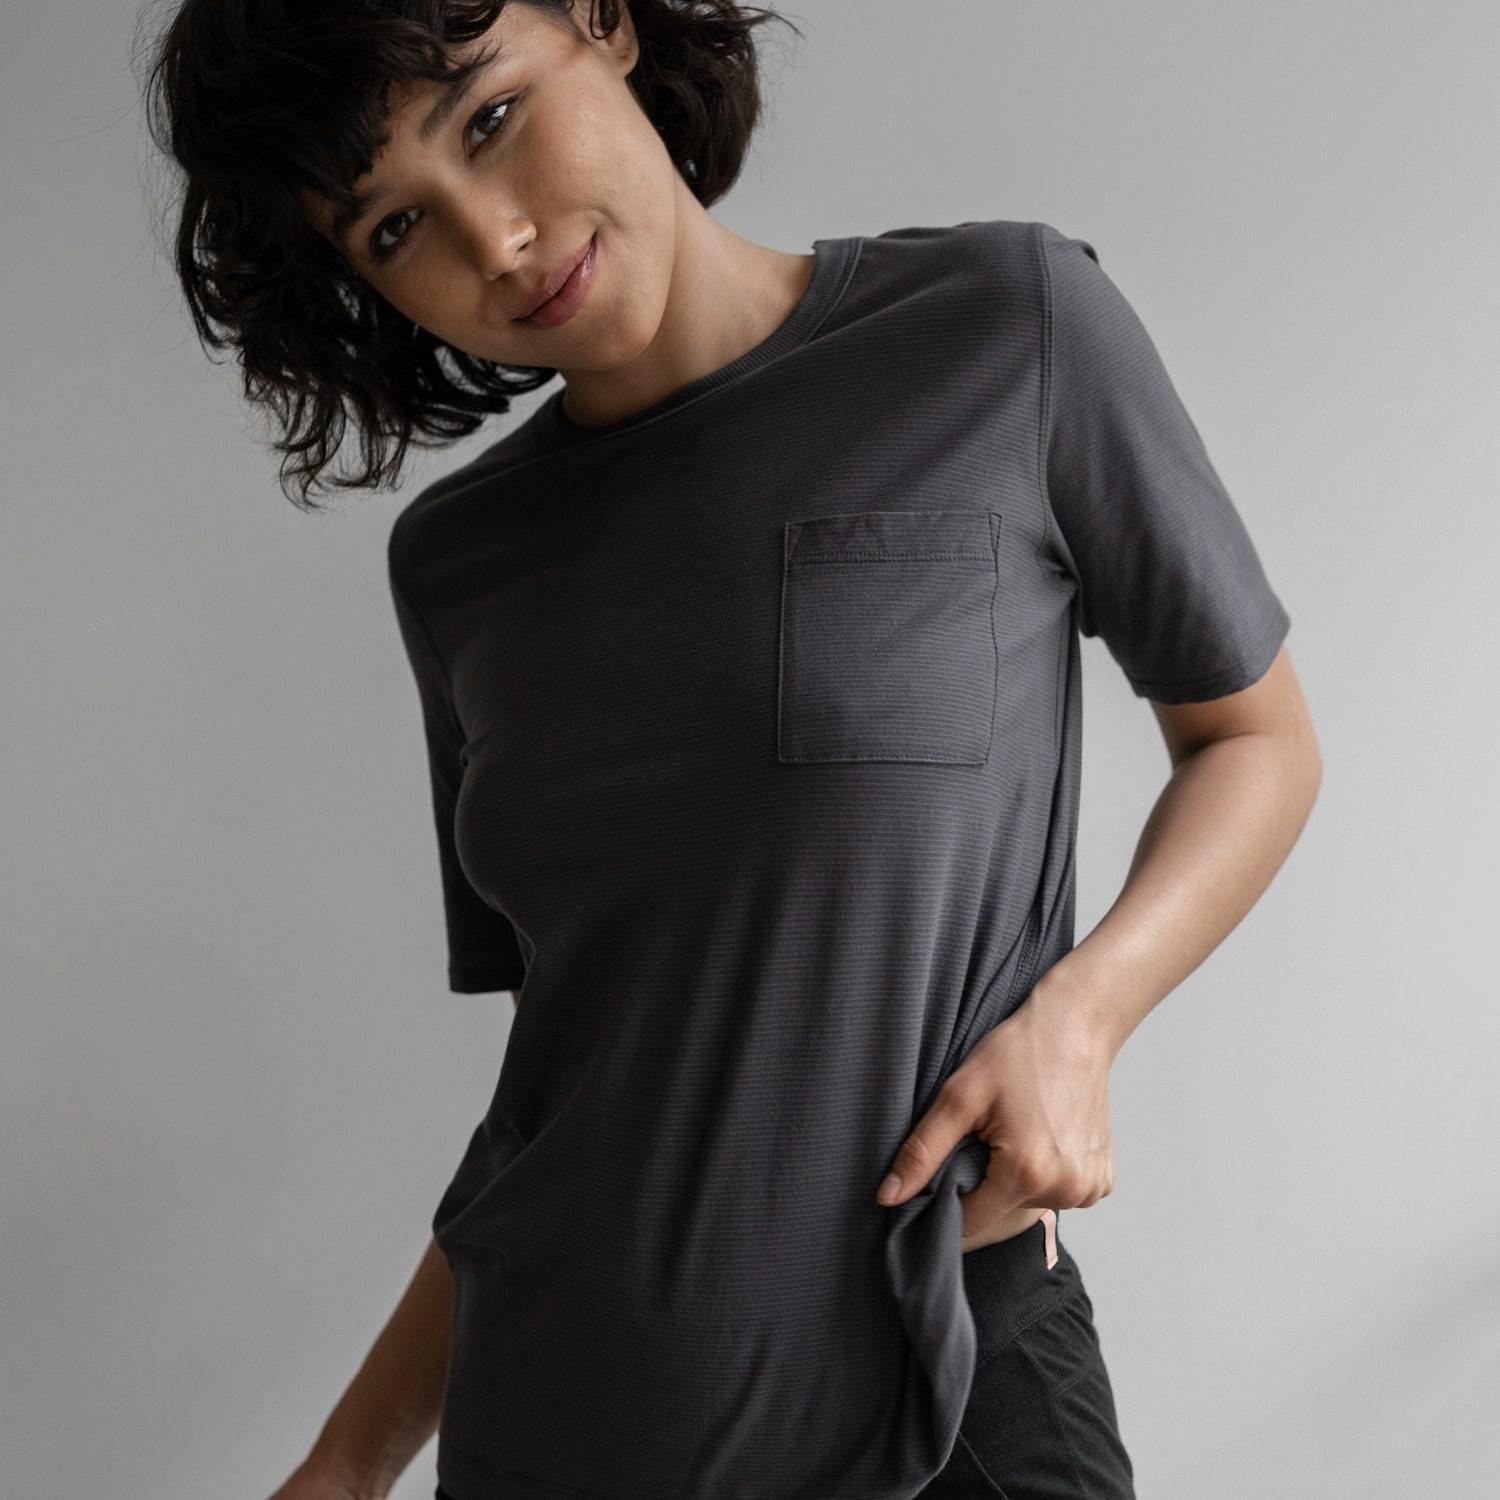 Lunya Sleepwear Cool Short Sleeve Tee - #Eclipse